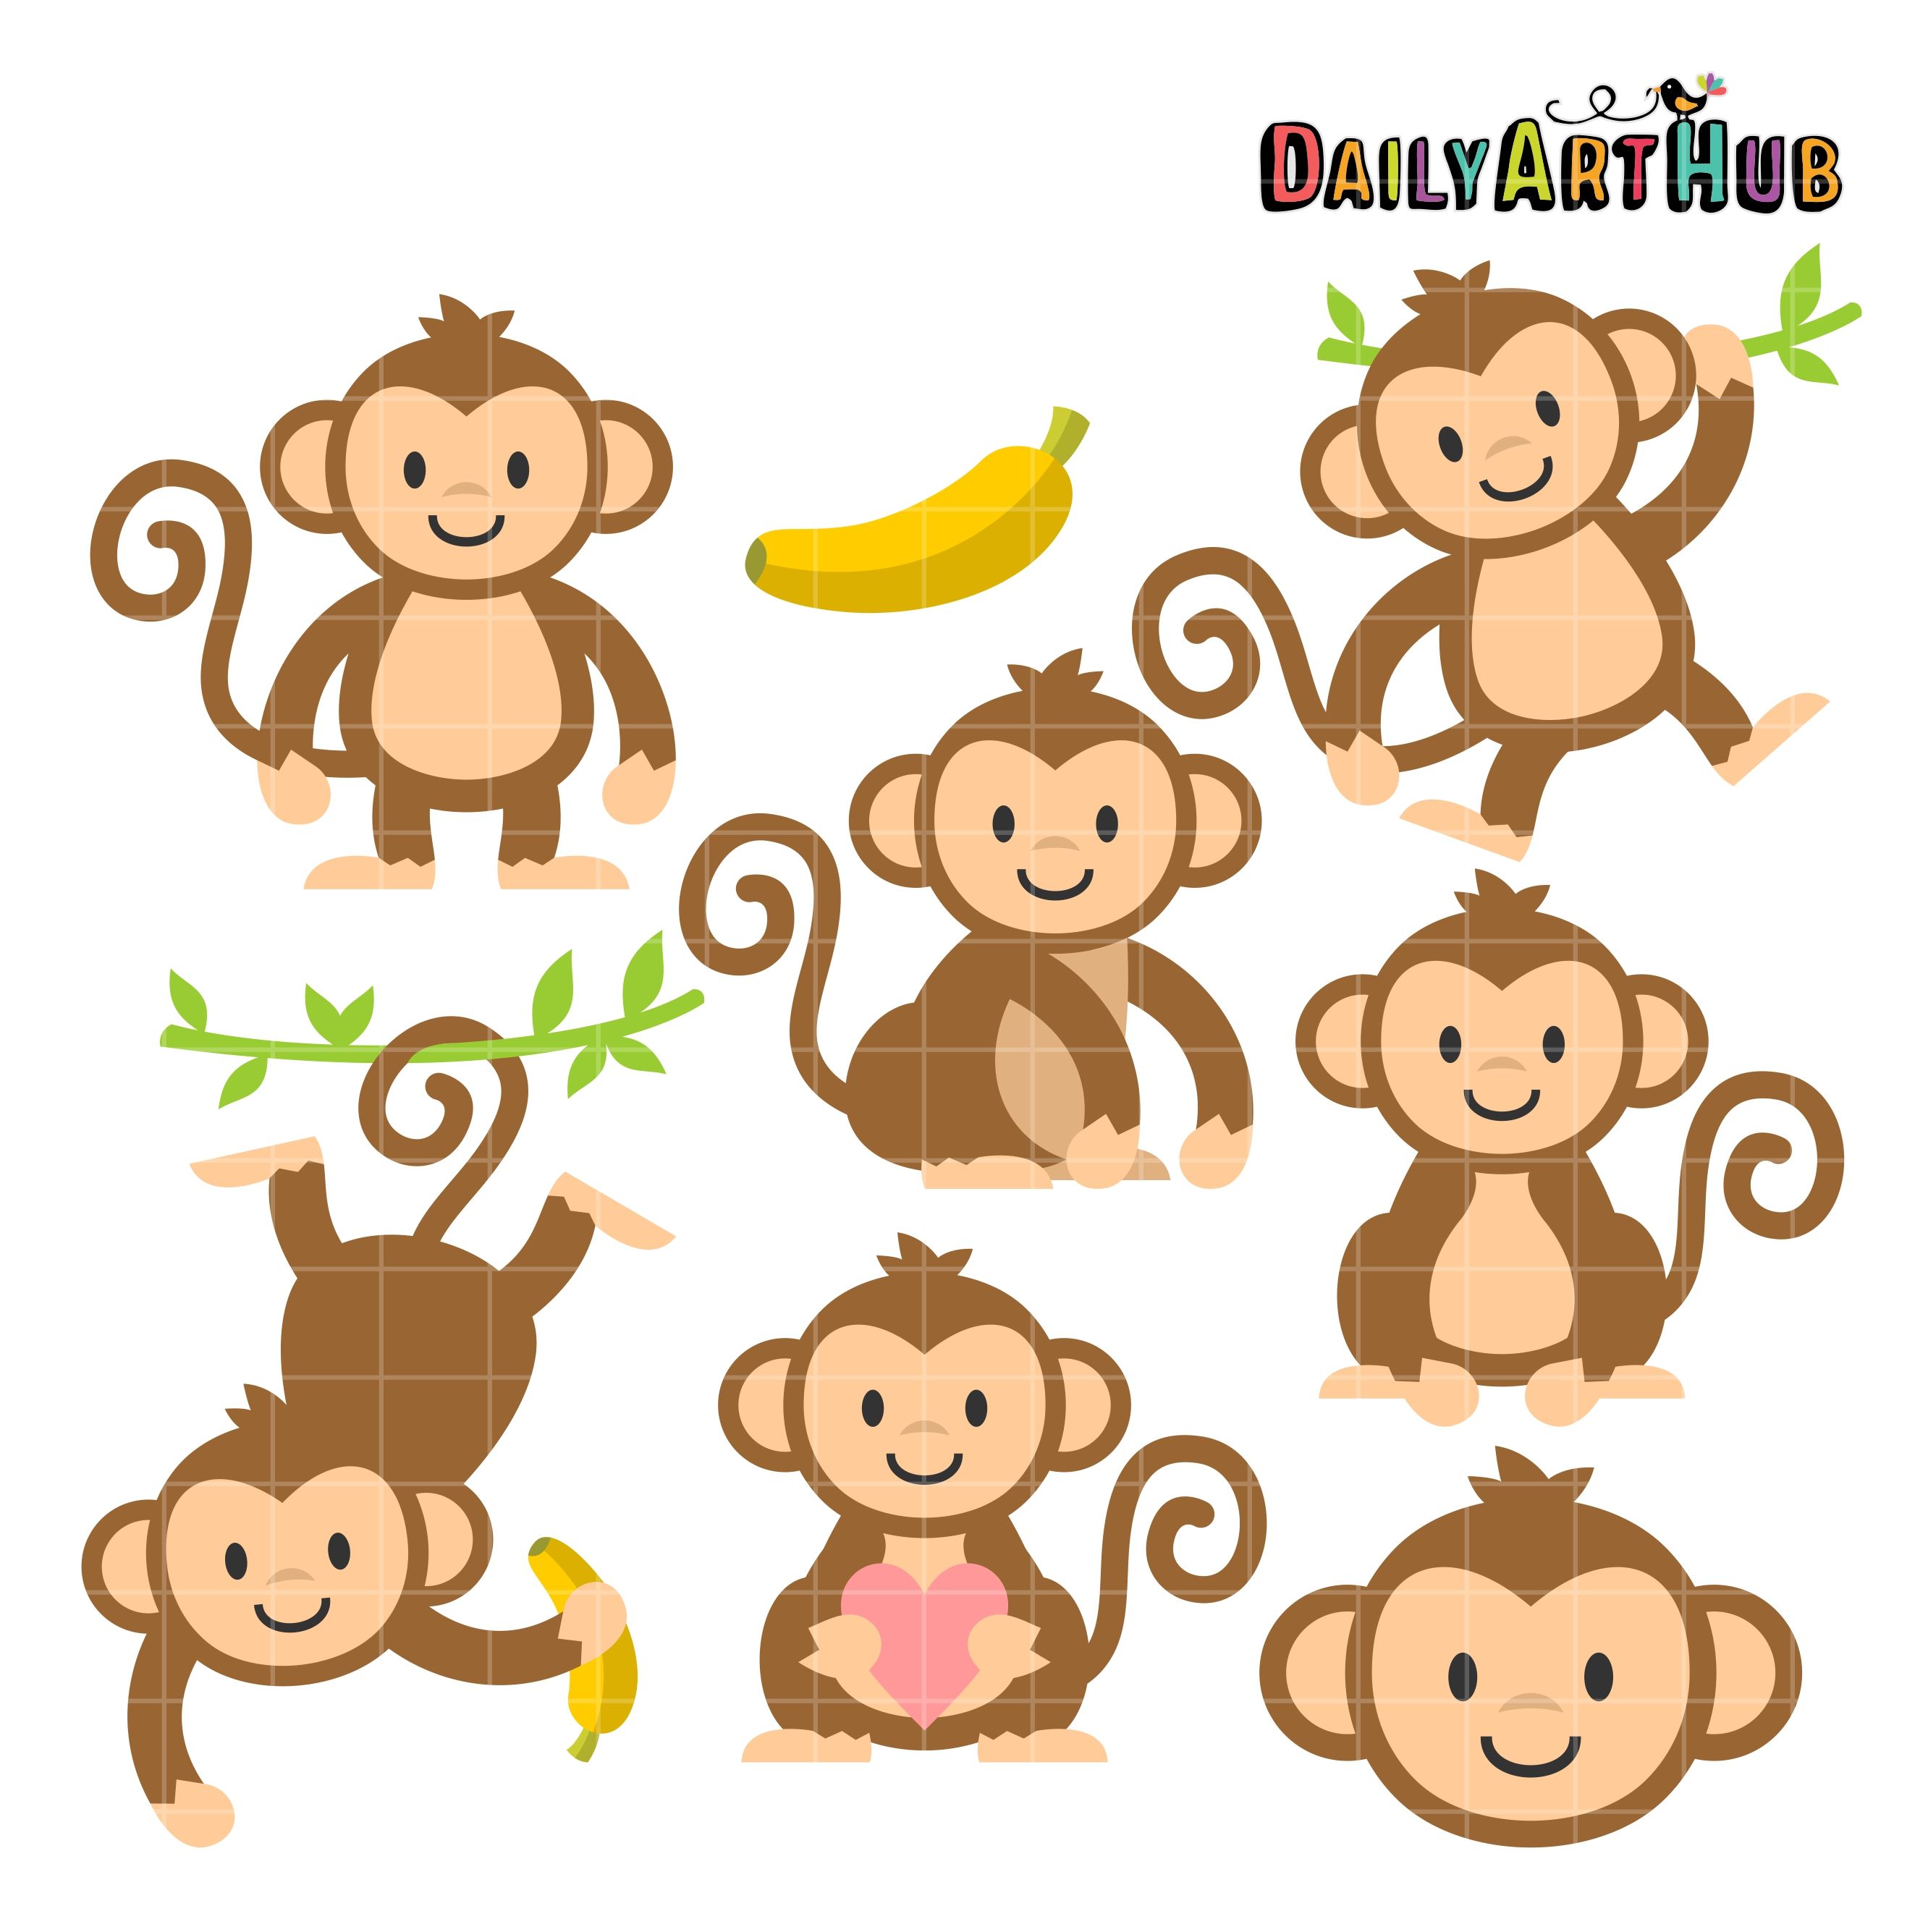 cute monkeys clip art set daily art hub free clip art everyday rh dailyarthub com clip art of monkey bars clip art of monkeys turning on people